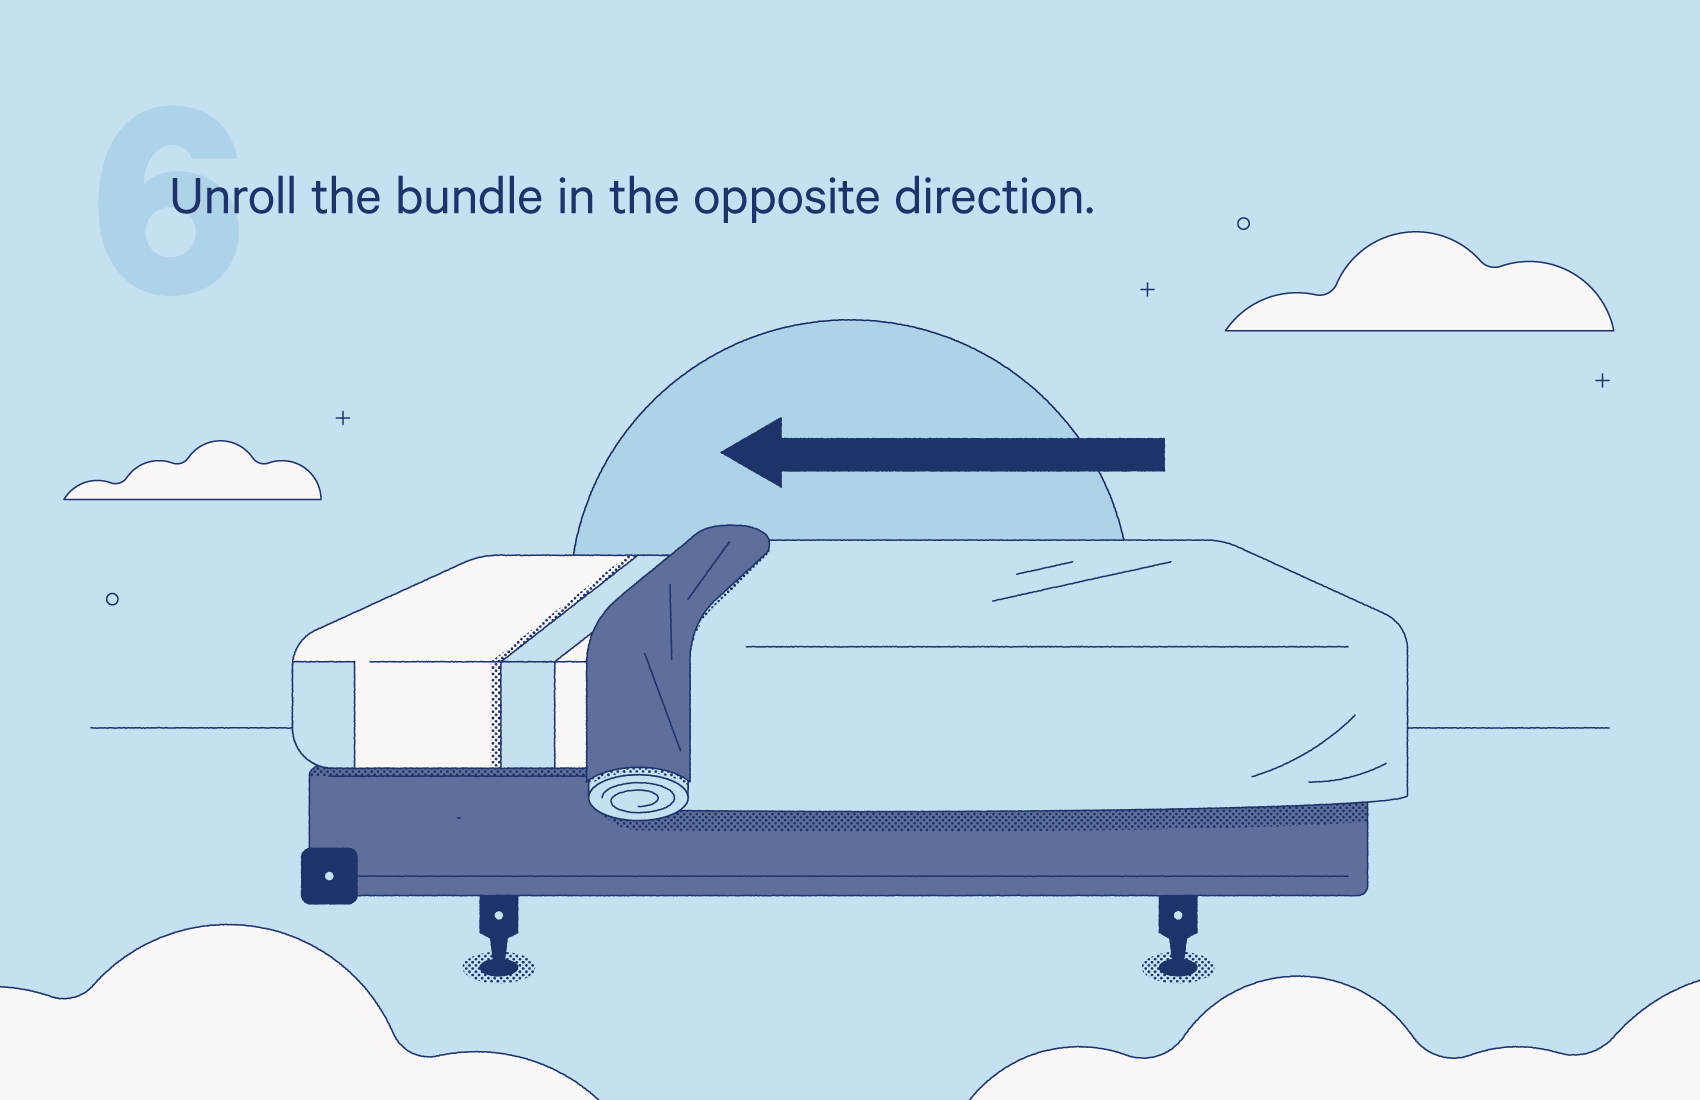 unroll the bundle in the opposite direction